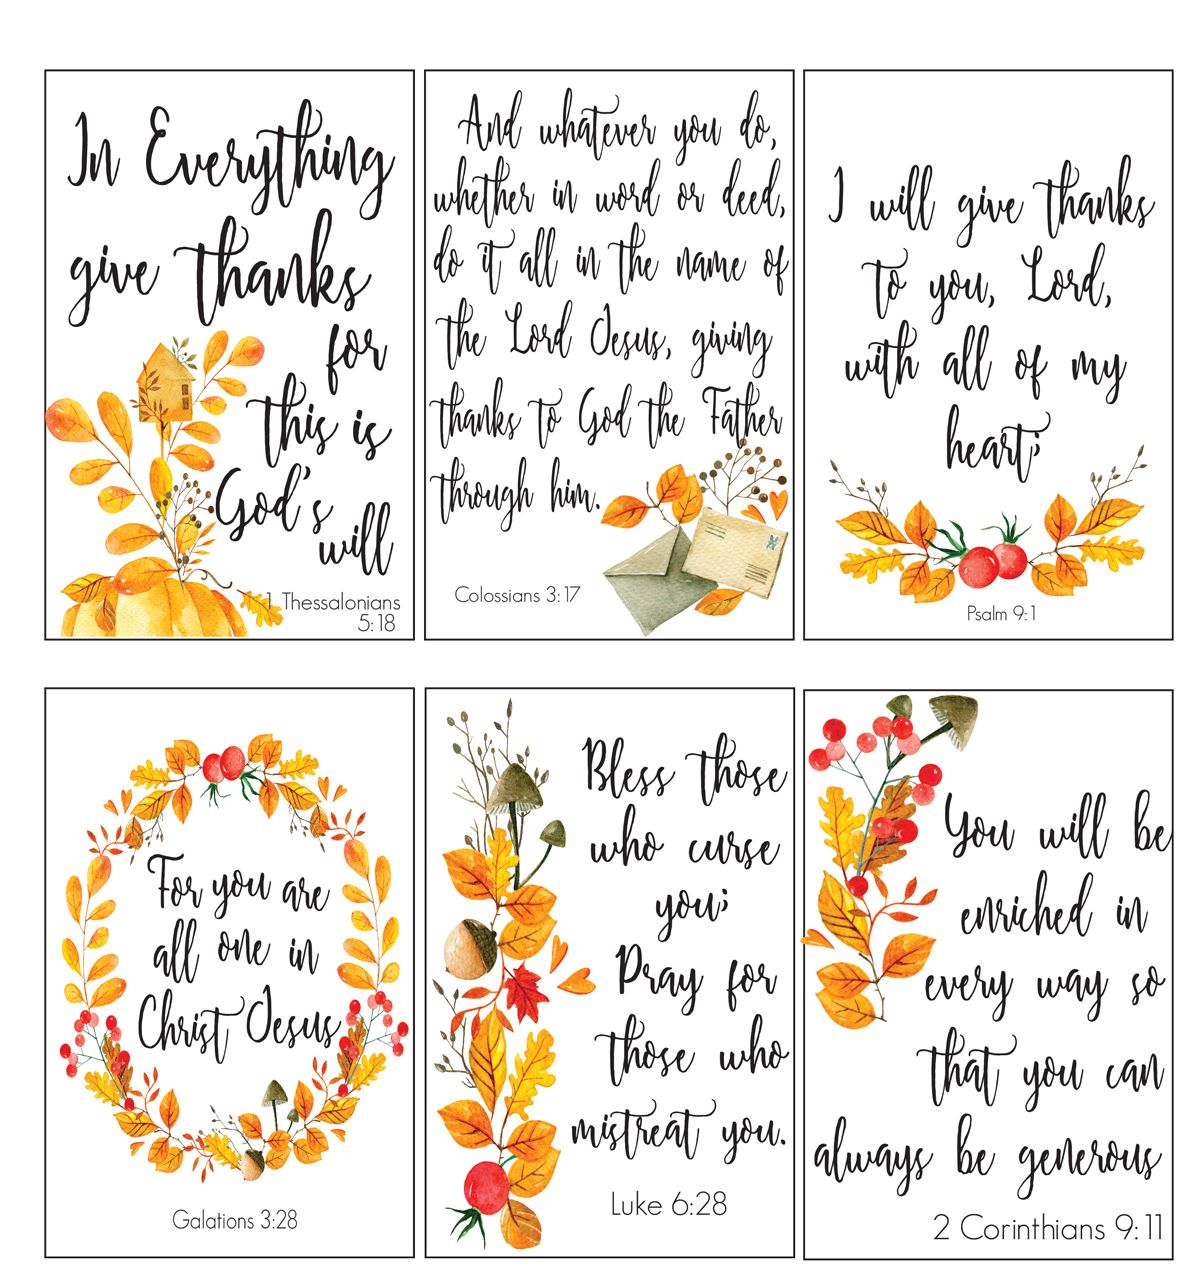 photograph relating to Free Printable Scripture Cards known as Pin upon For the Centre